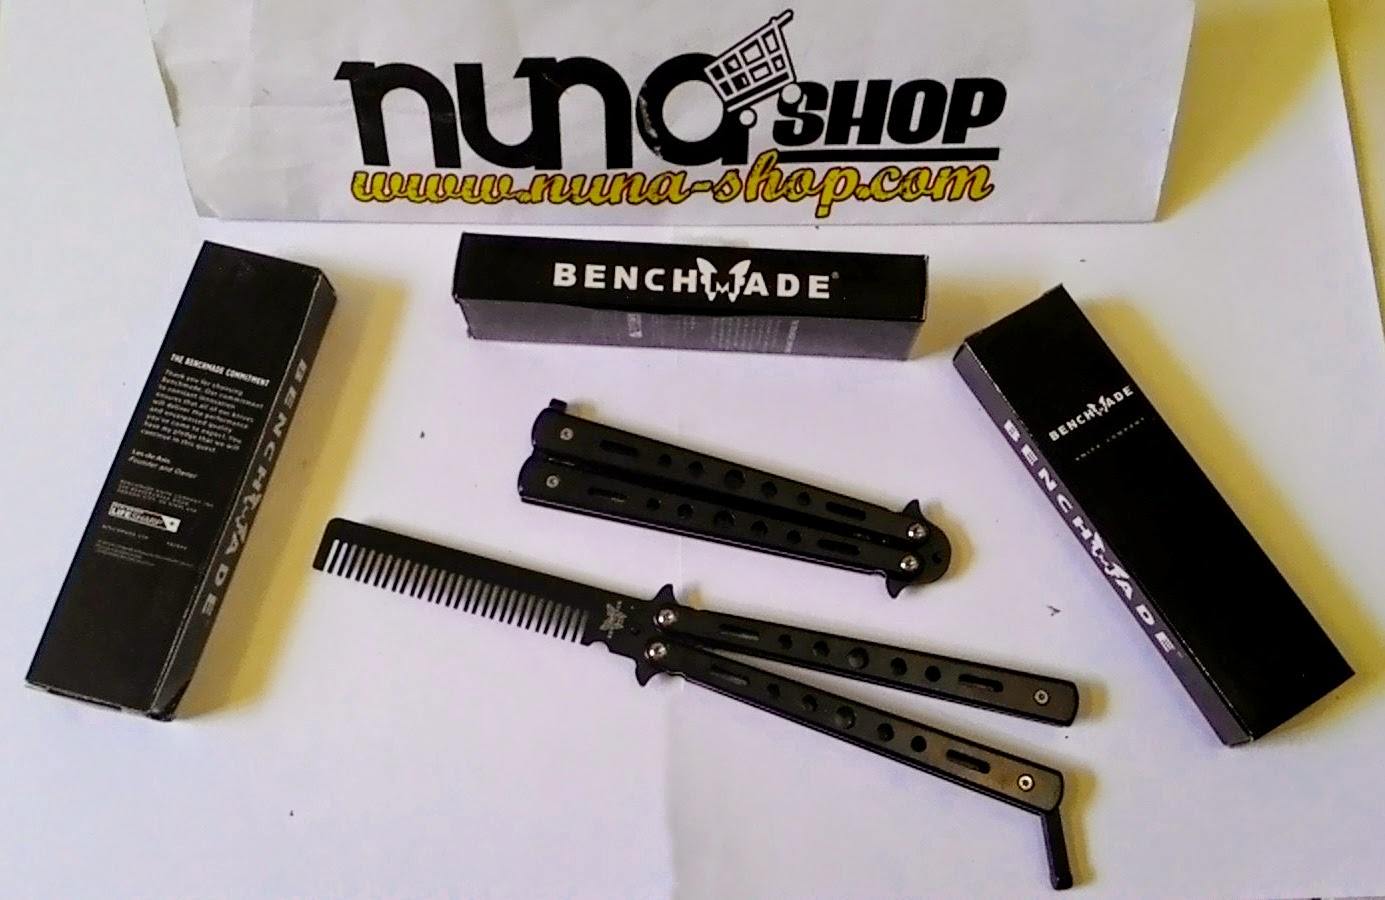 New Stainless Steel Balisong Flipping Butterfly Comb - Benchamade Silver - Sisir Lipat Minyak Rambut Pomade Bahan Stainless Steel Warna Black Hitam